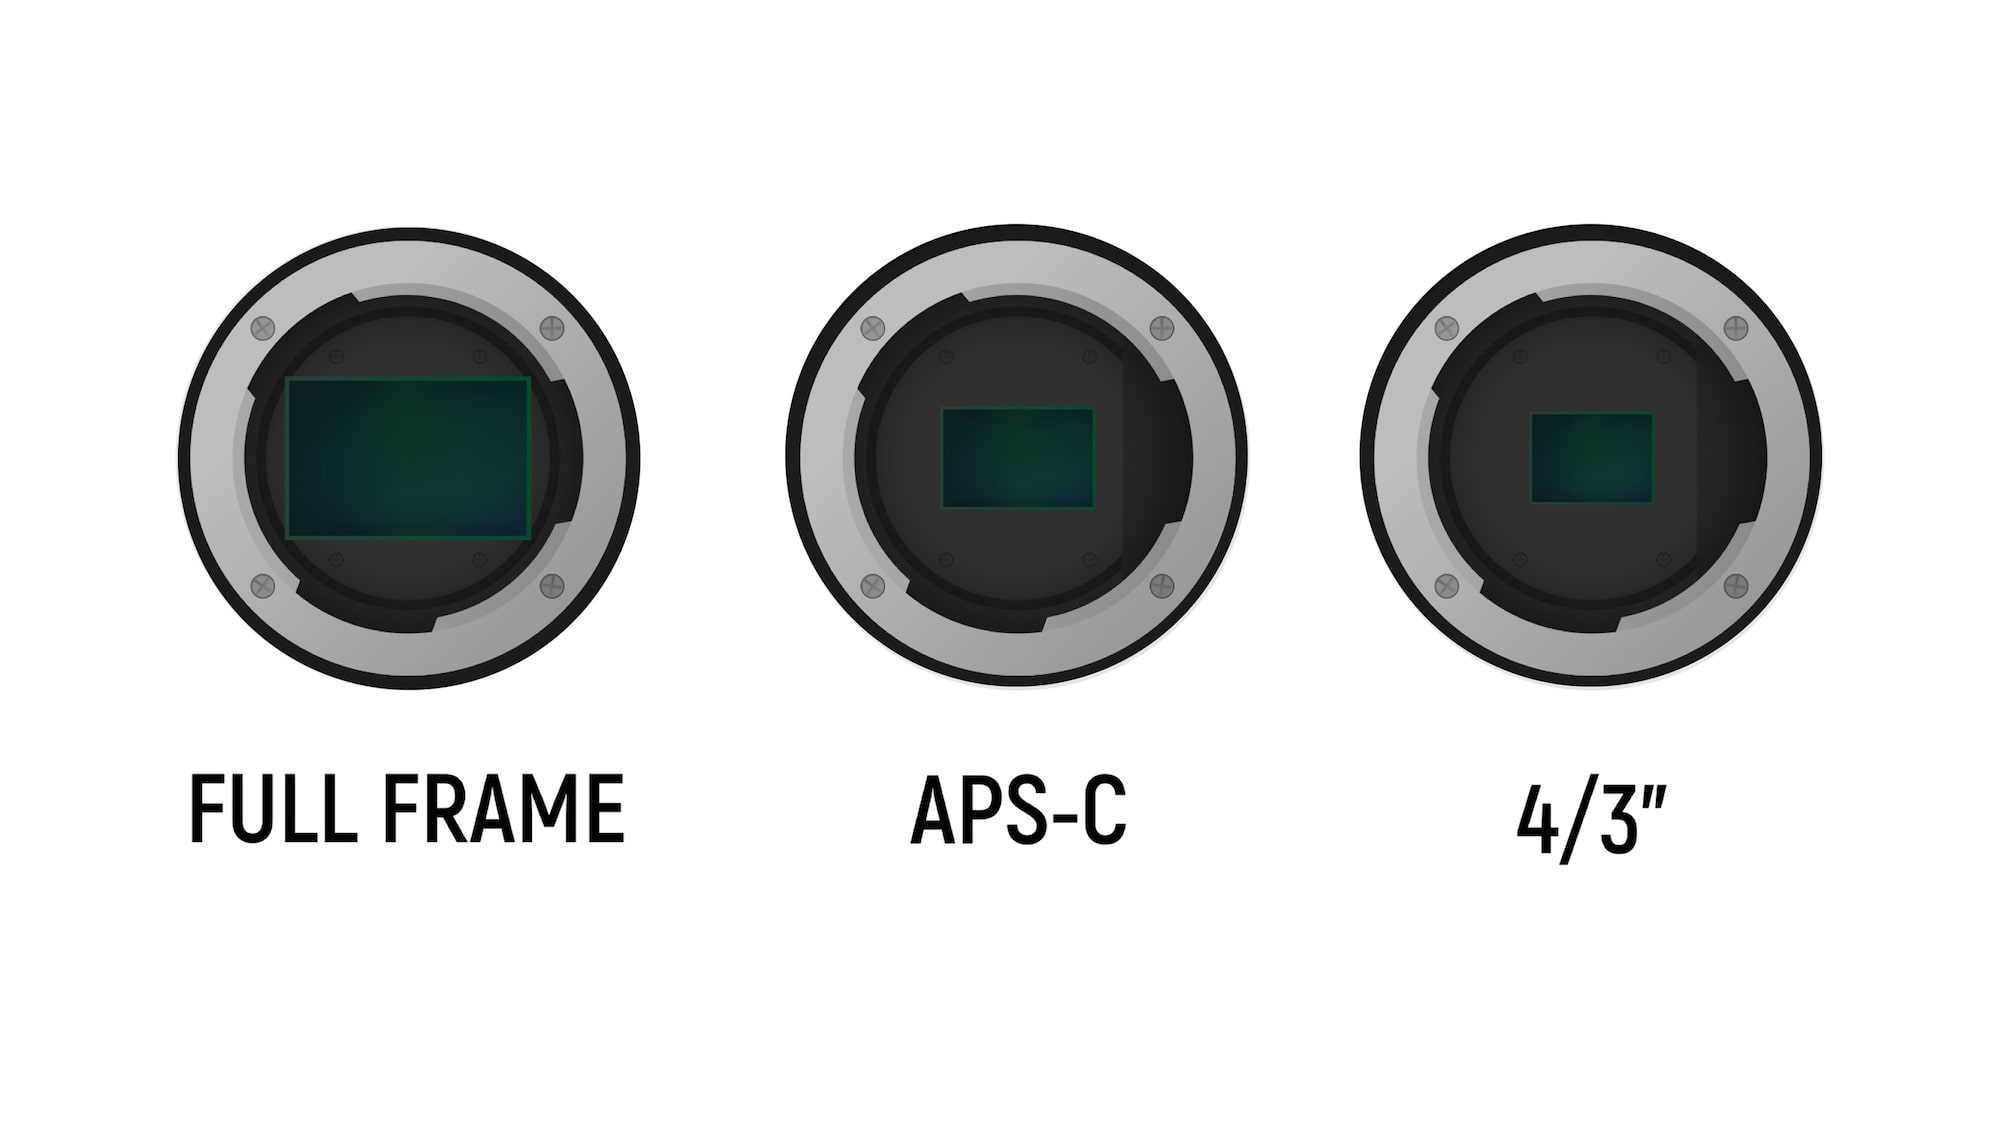 Full-frame vs. APS-C vs. micro four thirds camera sensors